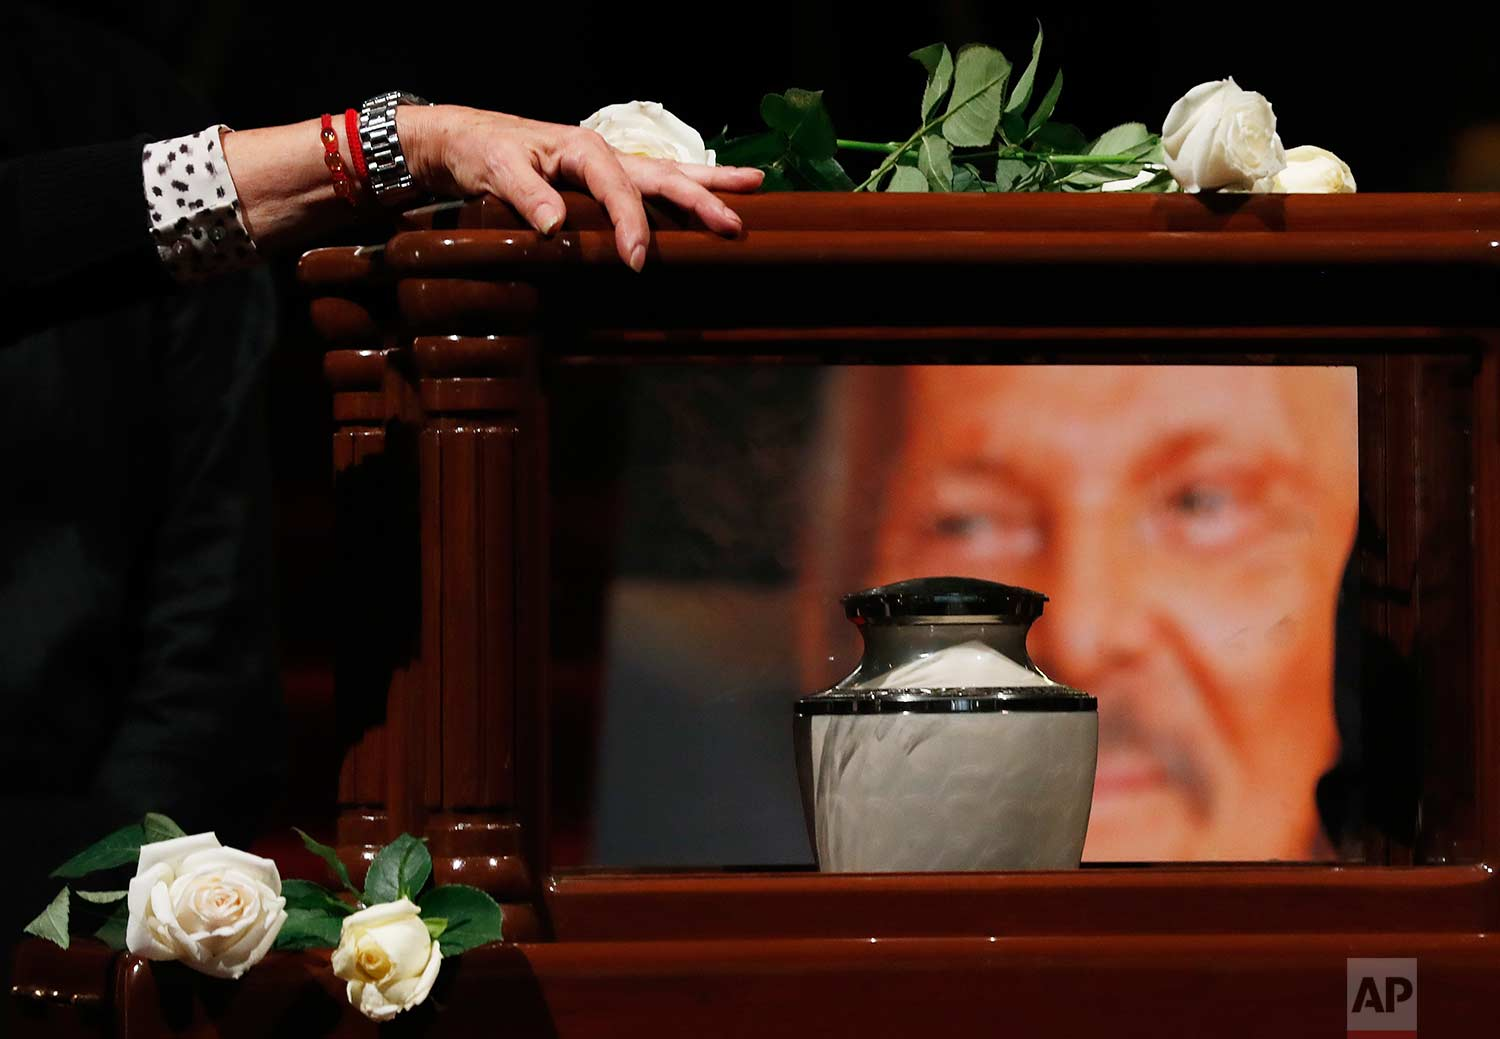 A woman touches the box containing the ashes of of Mexican painter Jose Luis Cuevas, in the Palace of Fine Arts in Mexico City, Tuesday, July 4, 2017. (AP Photo/Eduardo Verdugo)